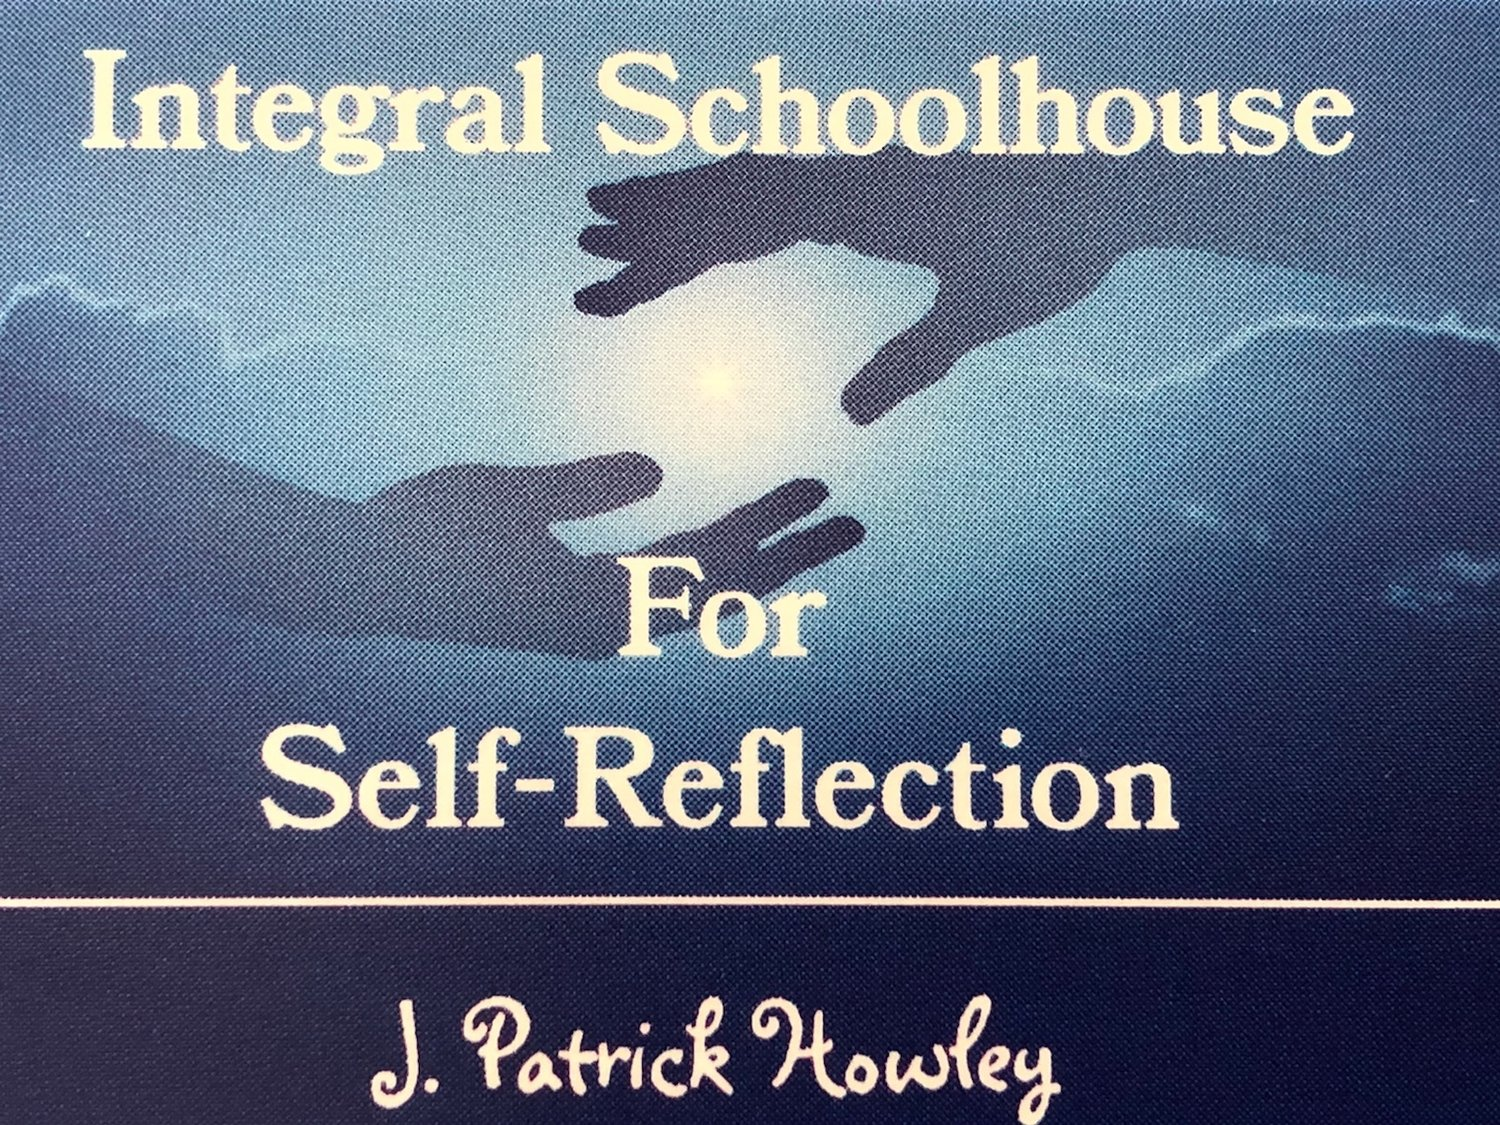 Integral Schoolhouse for Self-Reflection